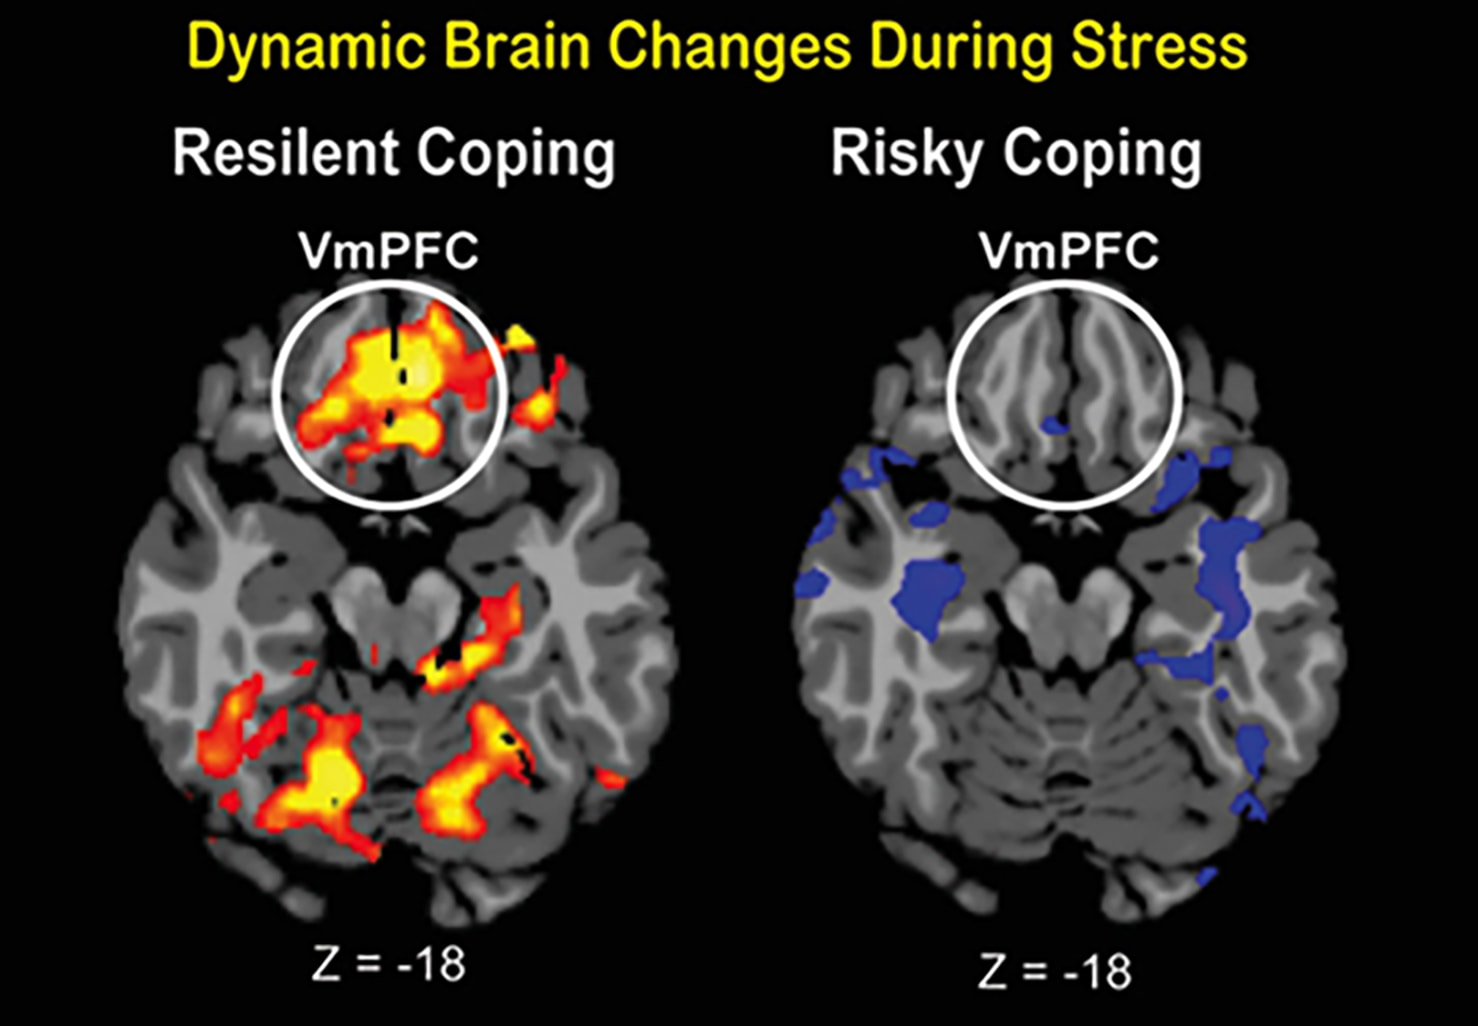 Dynamic brain changes during stress